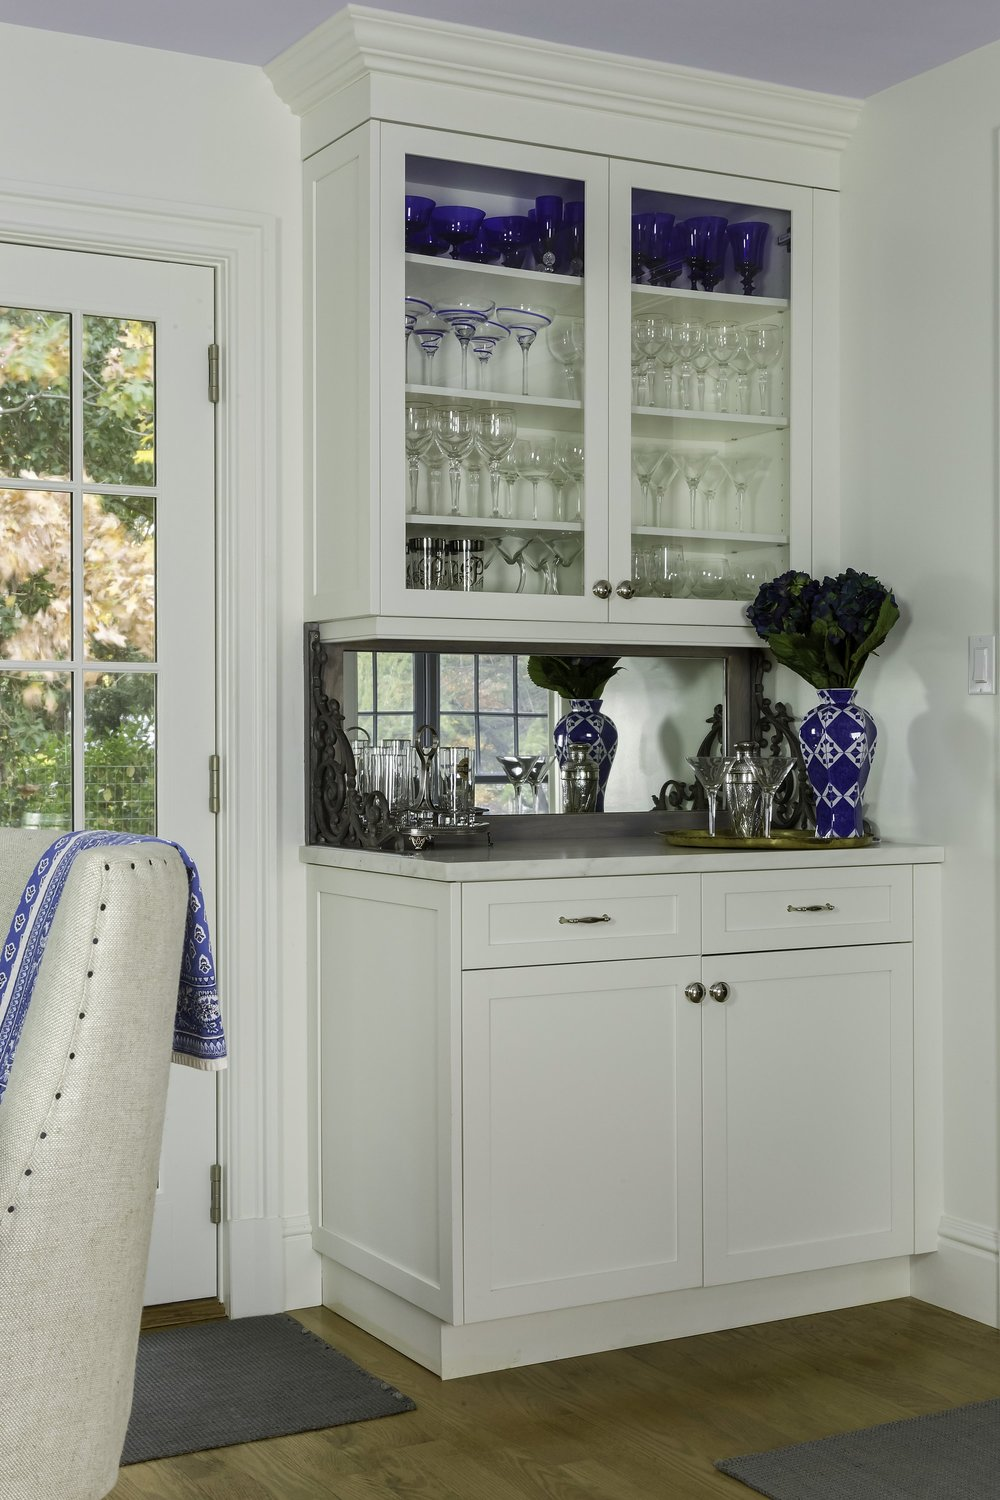 Transitional style kitchen with wine glass cabinet at the corner